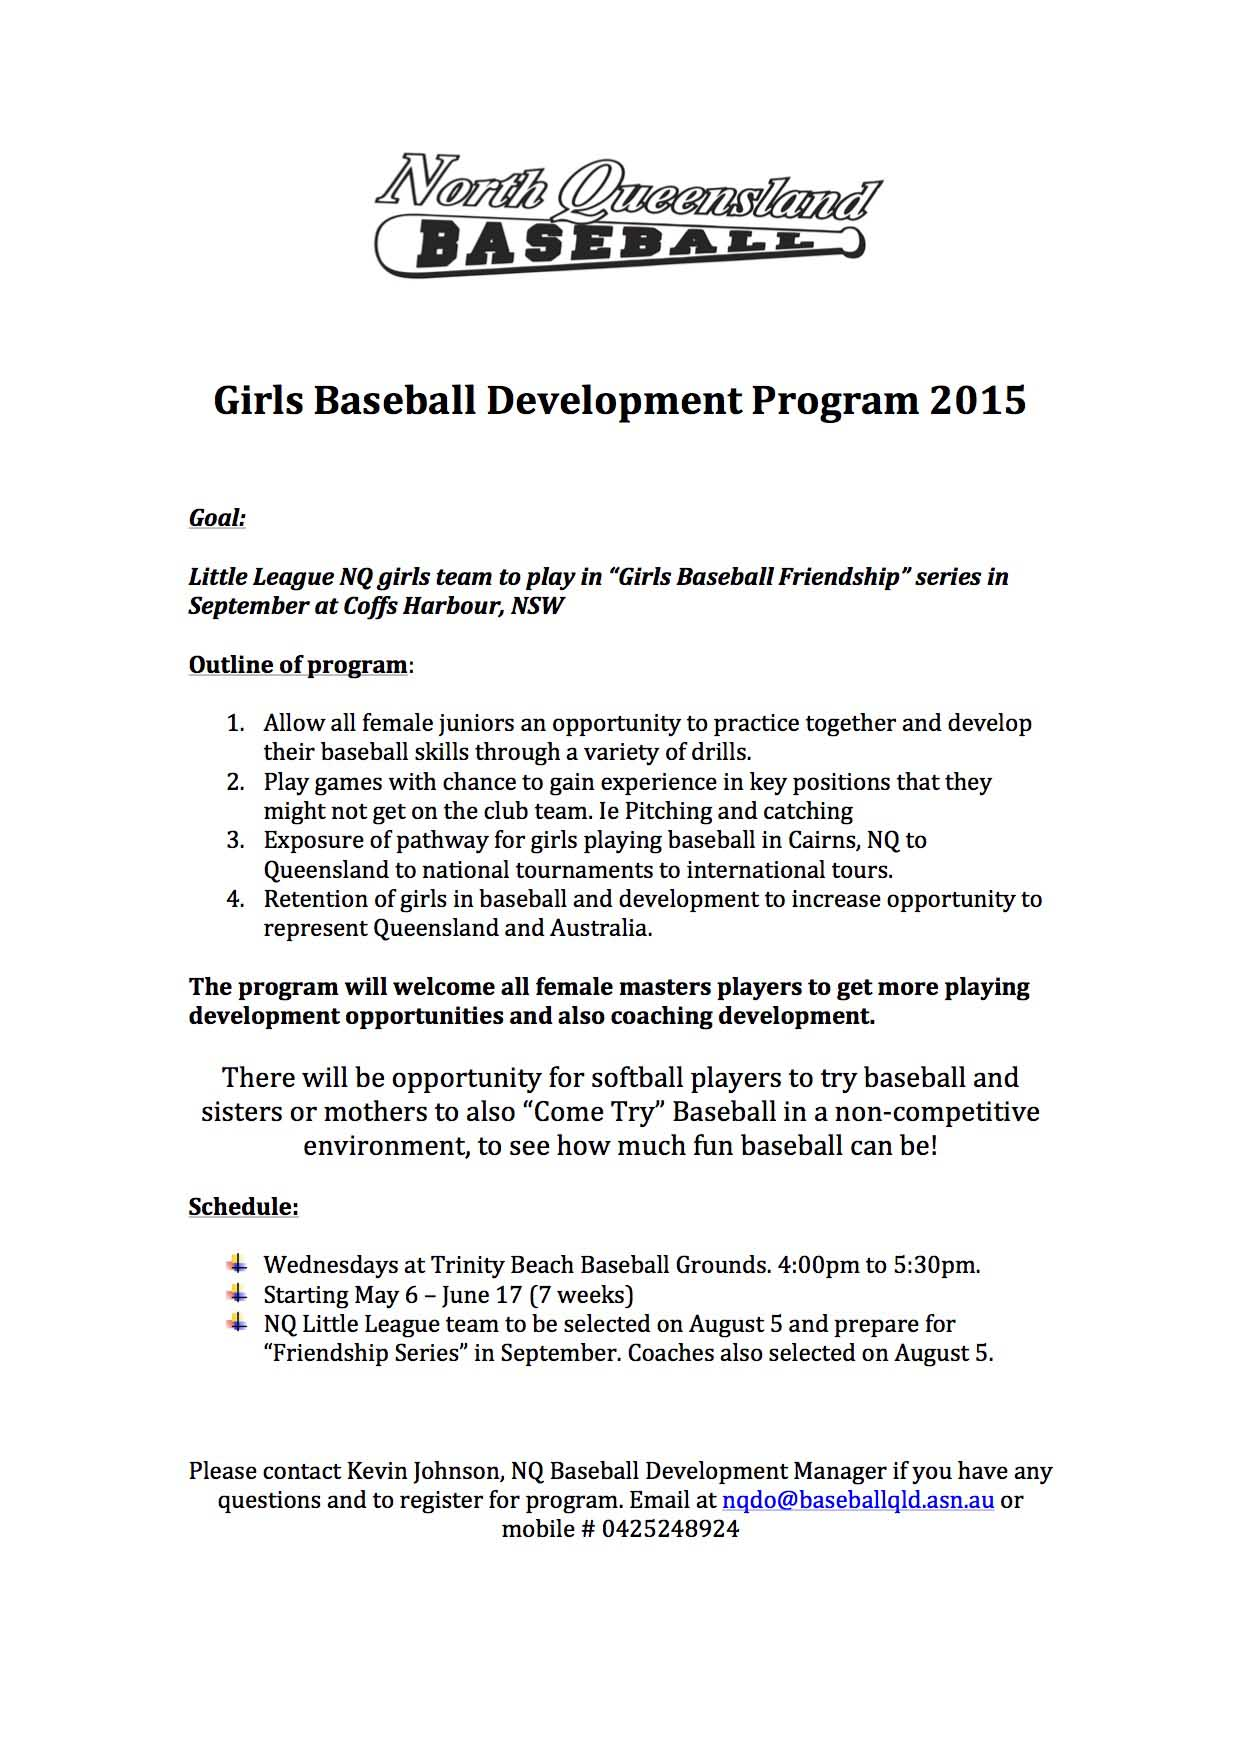 Girls Baseball Development Program 2015